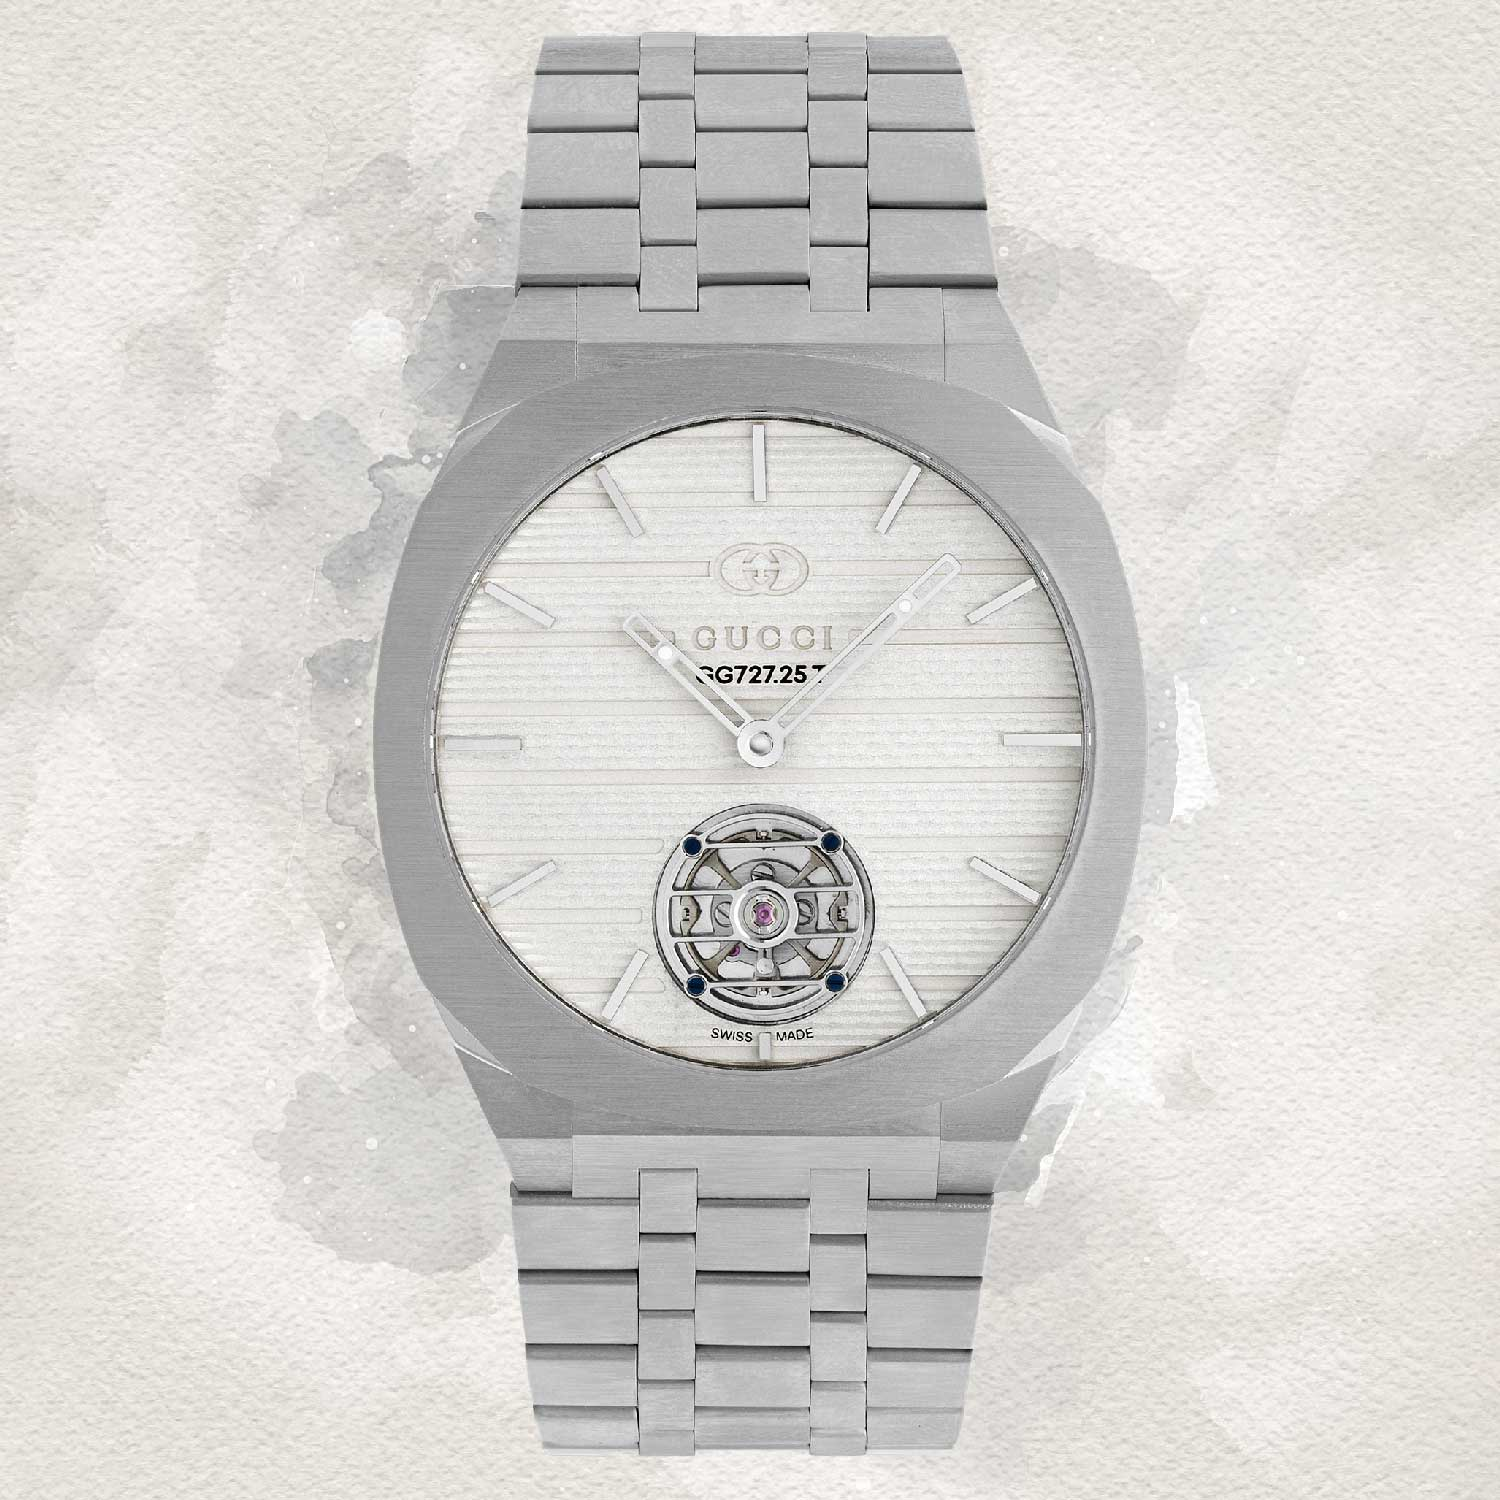 Gucci 25H in platinum featuring the ultra thin 3.7mm automatic movement with tourbillon complication